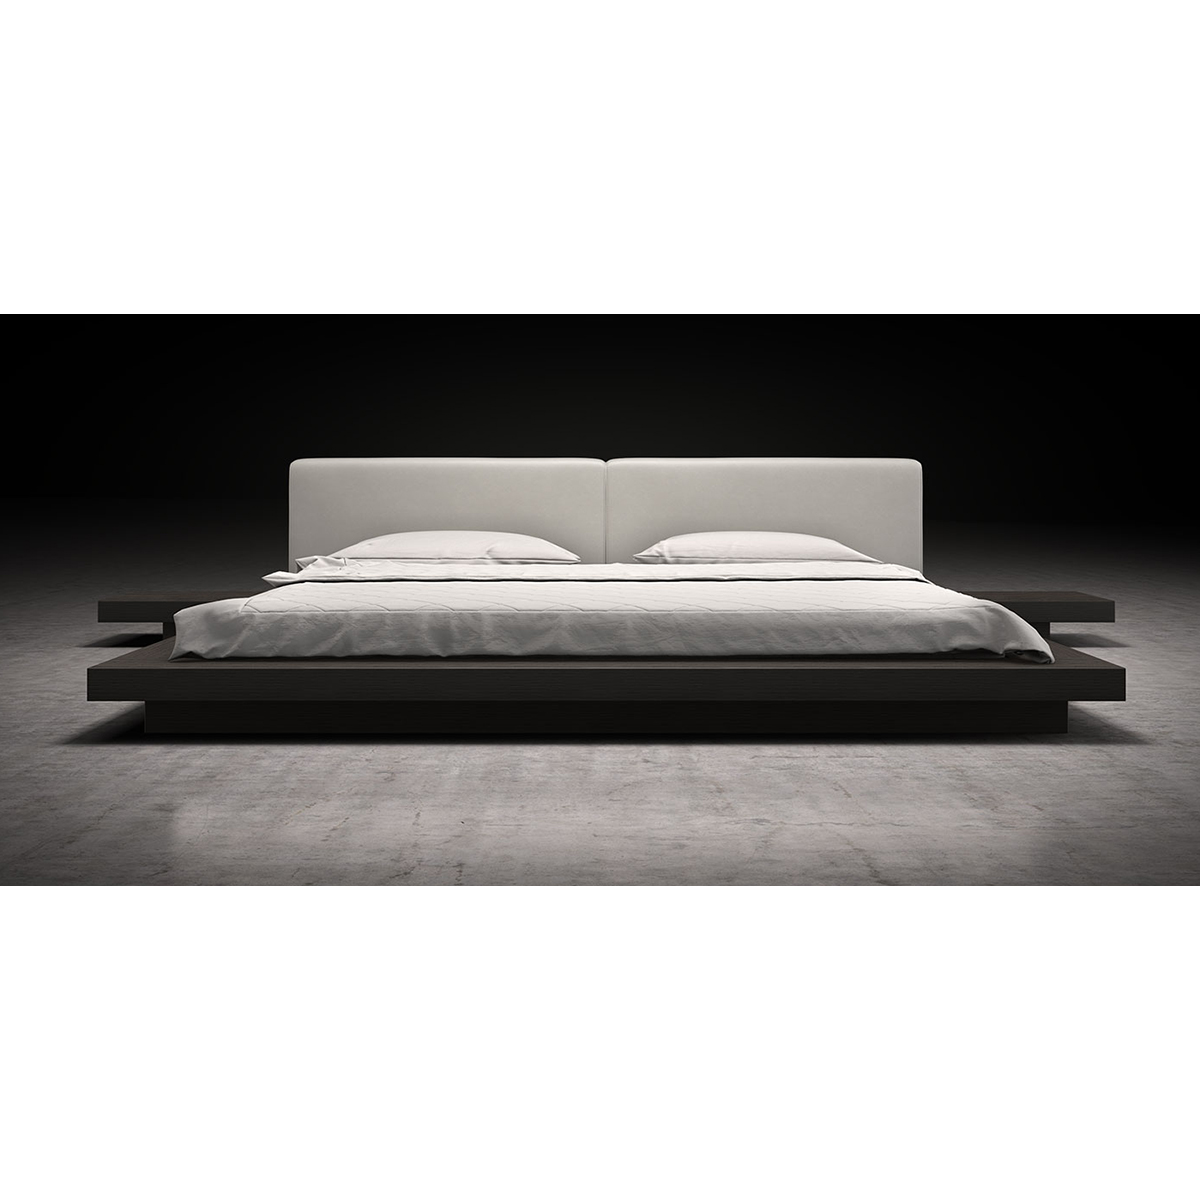 Modloft worth platform bed bedroom modern platform bed queen impera modern platform bedroom - Modloft worth platform bed king ...